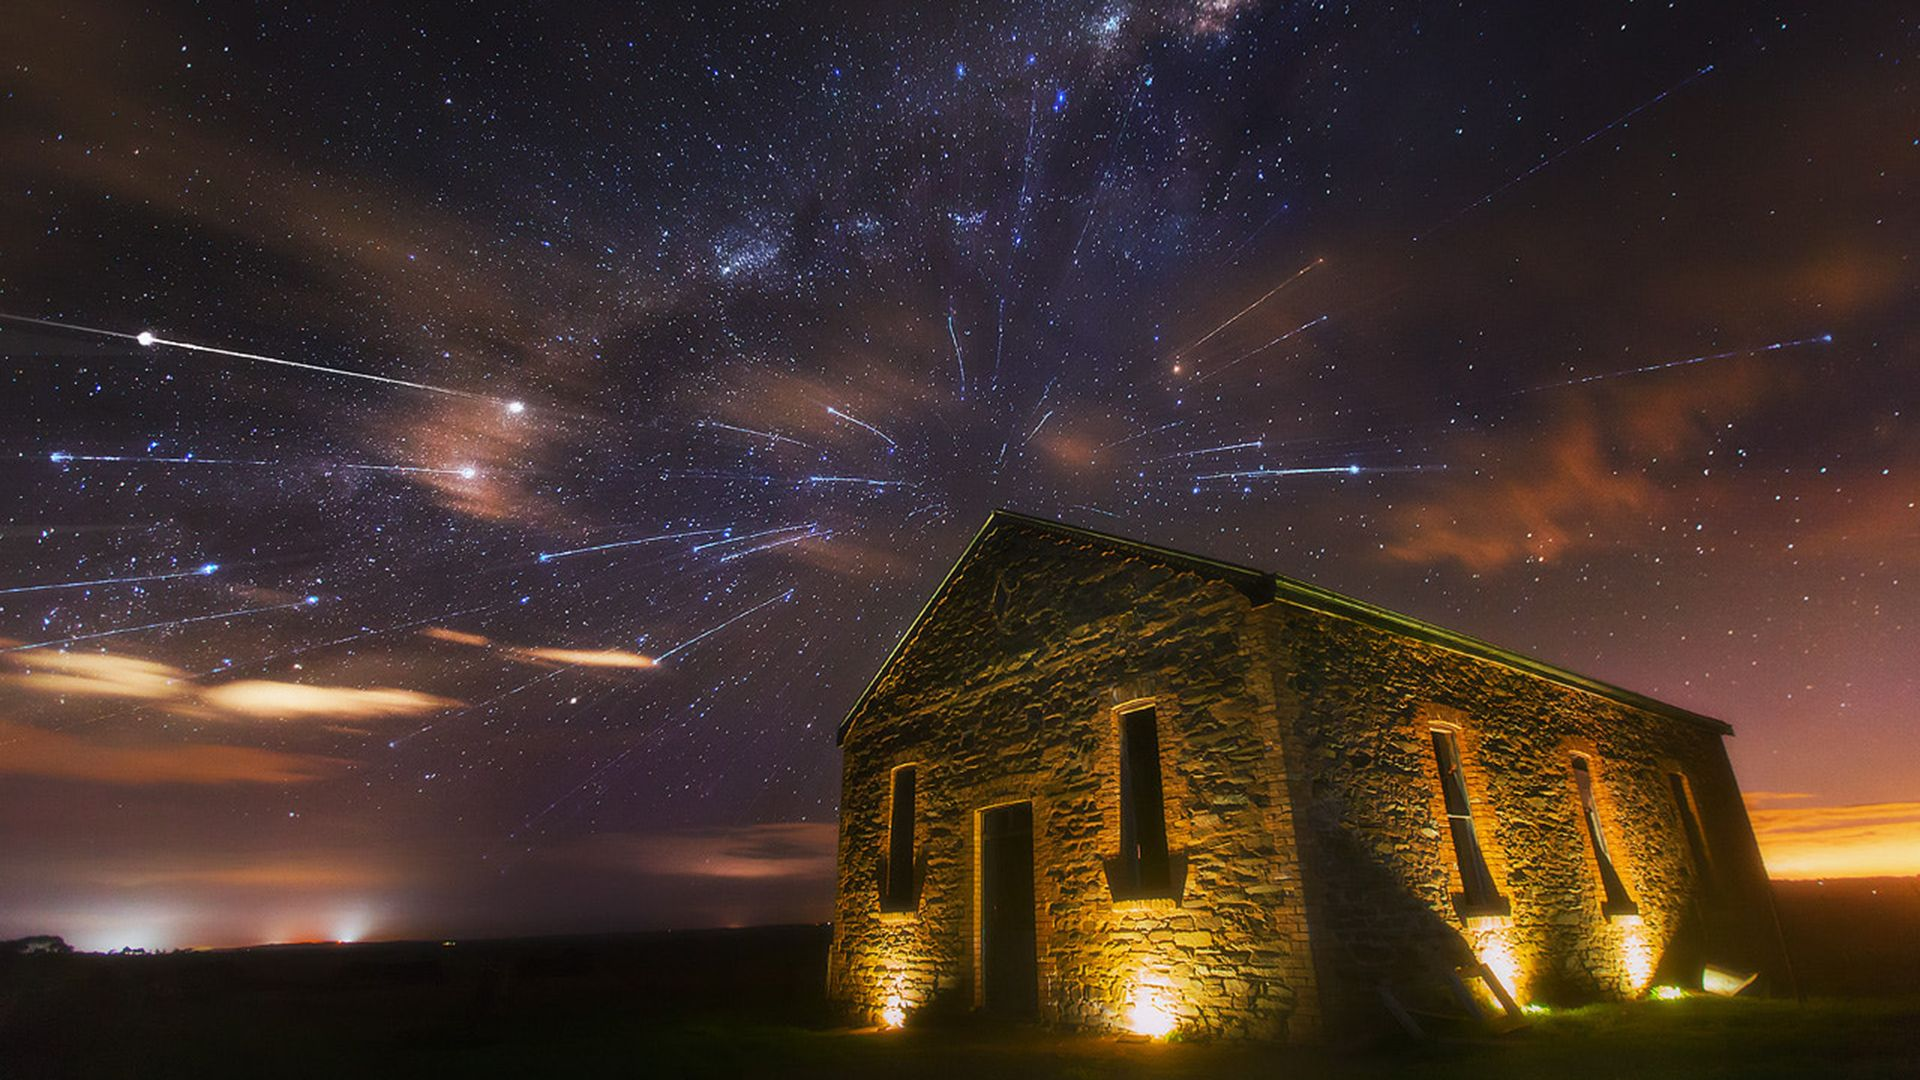 These stunning meteor shower photos will inspire you to capture a meteor on camera—and we can teach you how.